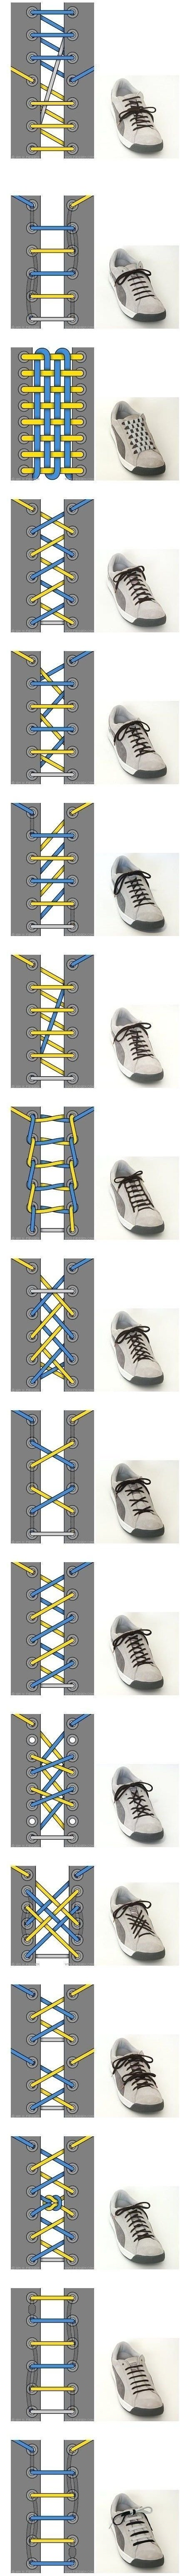 17 Ways To Tie Your Shoelaces